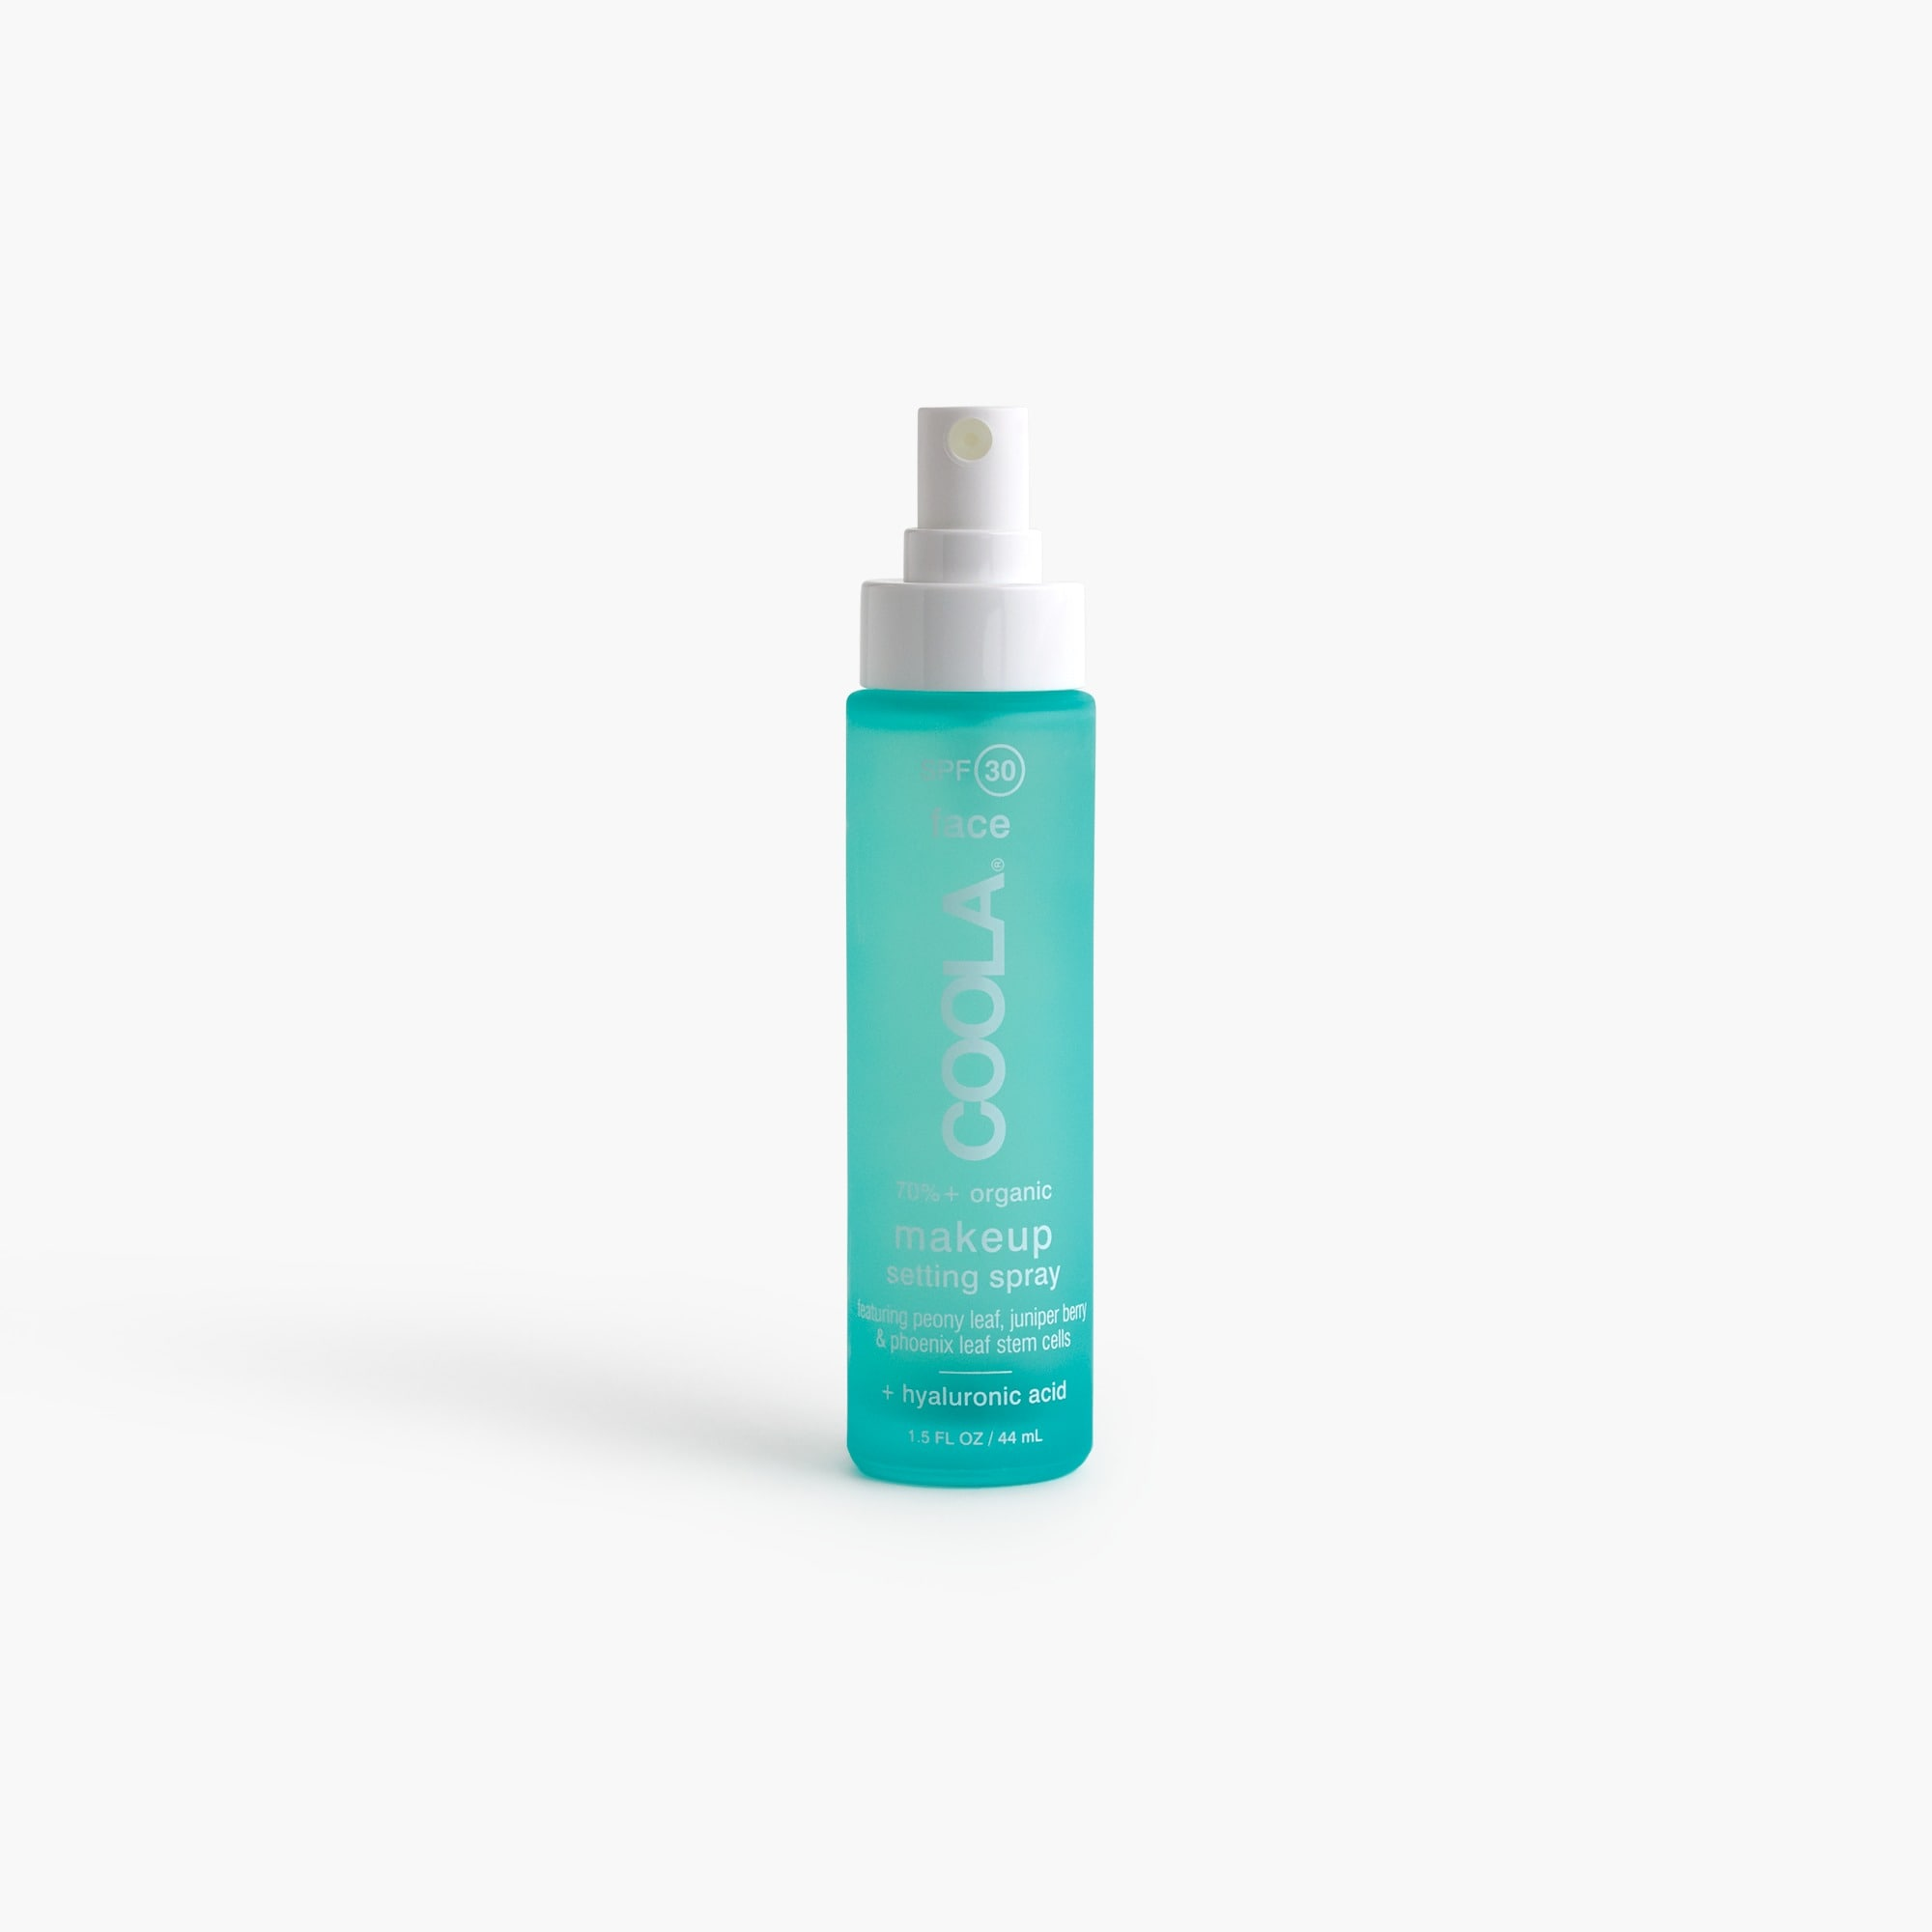 womens Coola® makeup setting spray 30 SPF